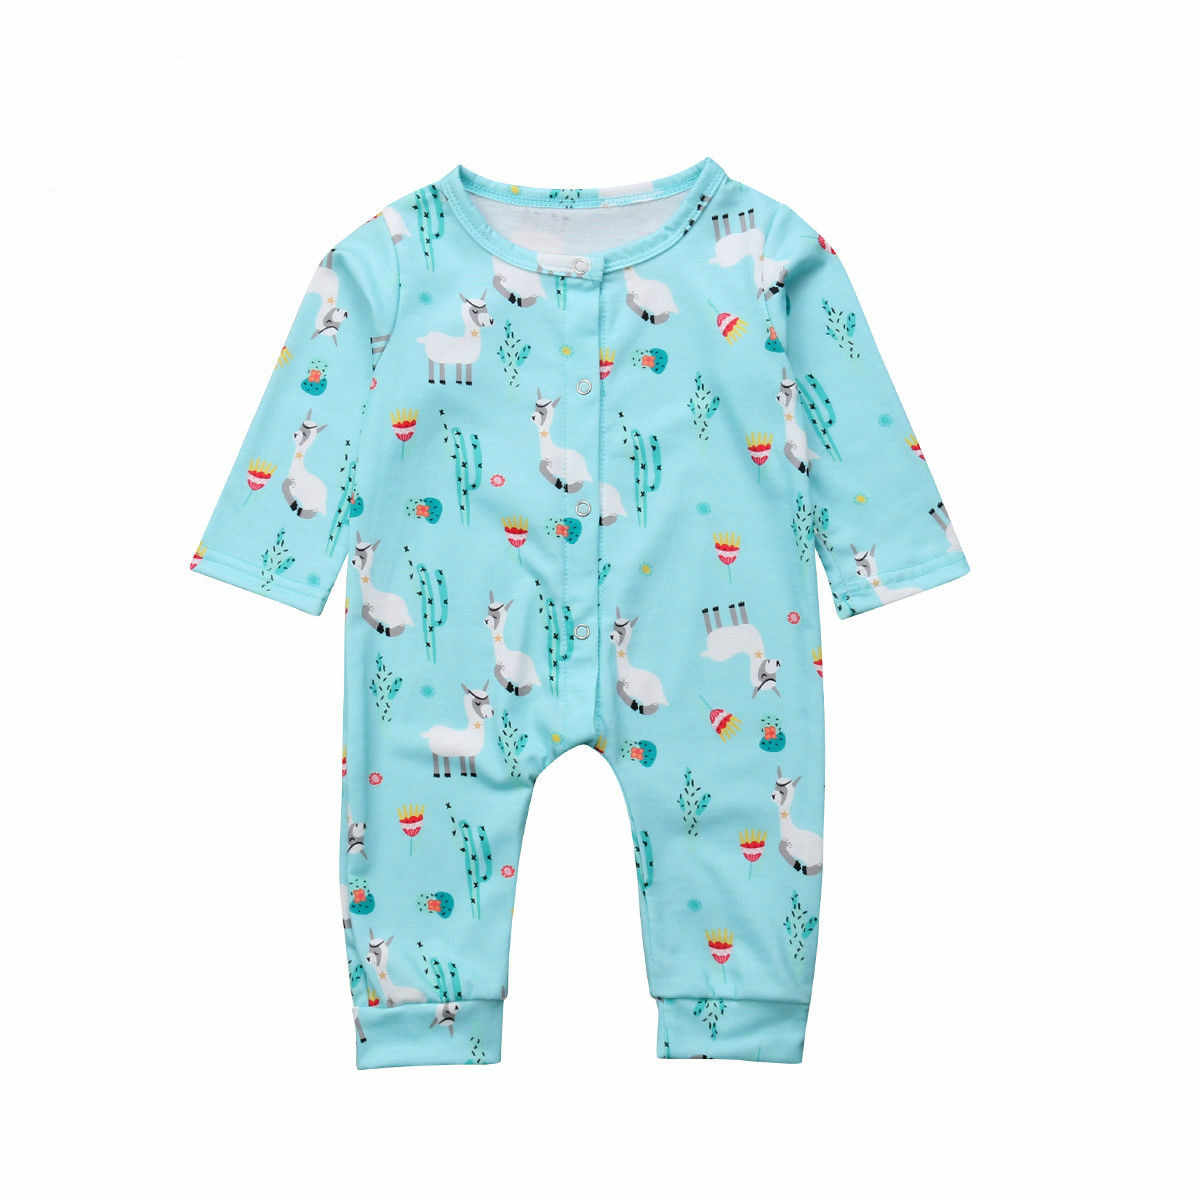 a2fa1a379d Detail Feedback Questions about Lovely Newborn Baby Boys Girls Blanket  Sleeper Fashion New Long Sleeve Animal Print Pajamas Casual Cotton Blanket  Sleepers ...